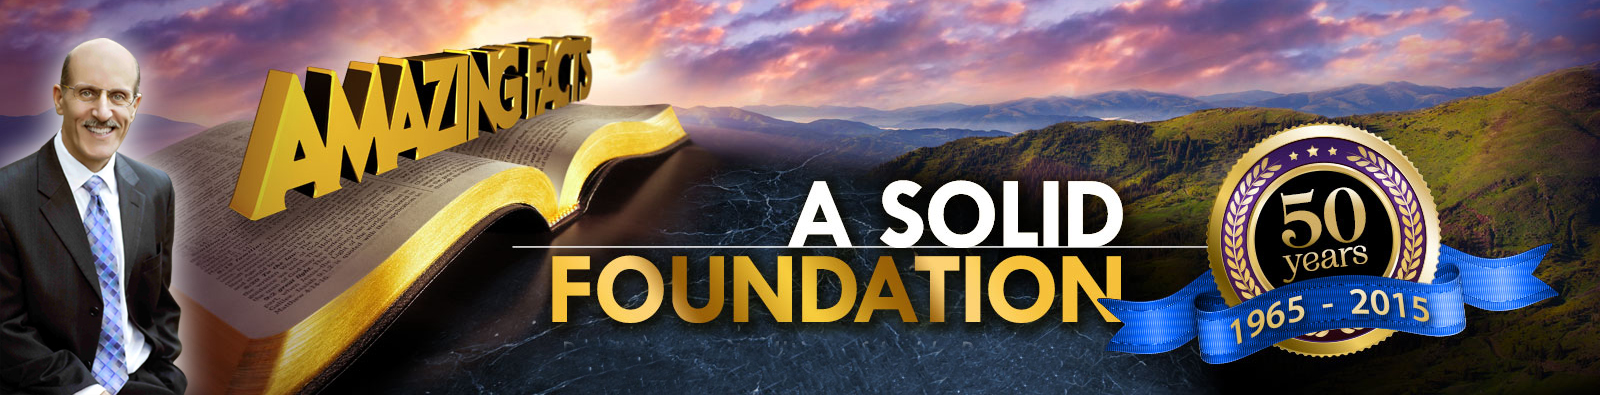 a-solid-foundation3